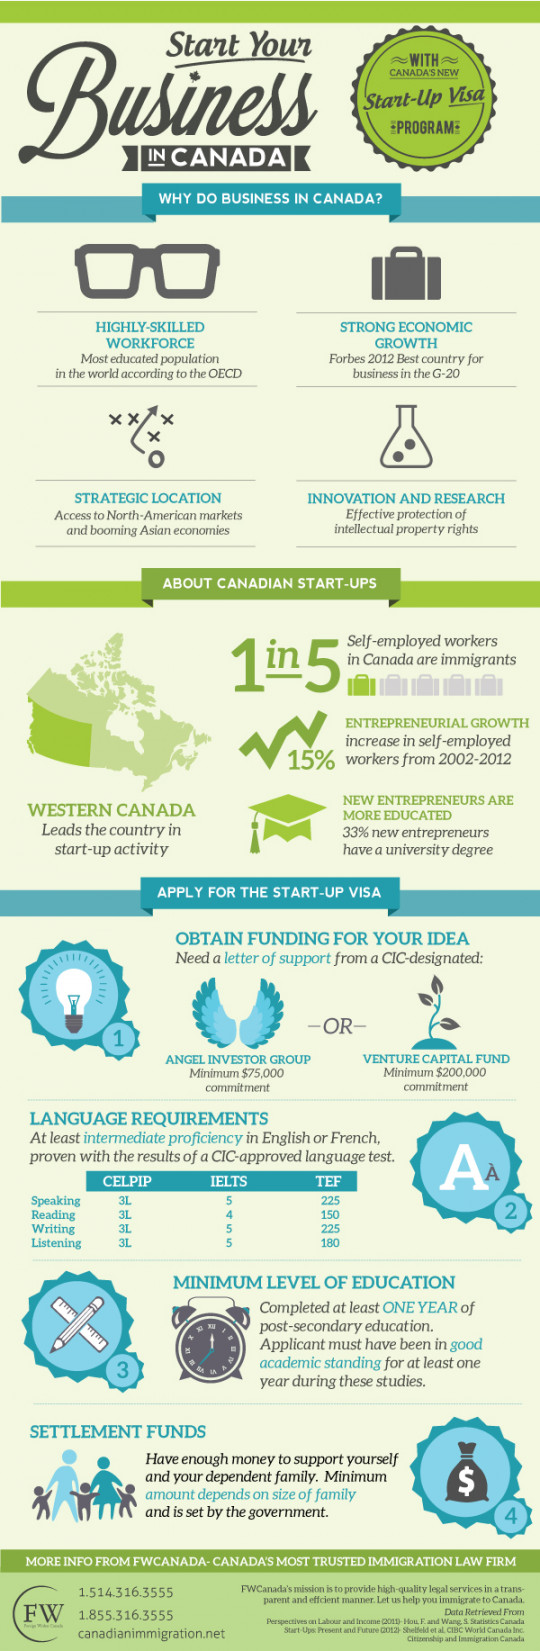 Start Your Business in Canada